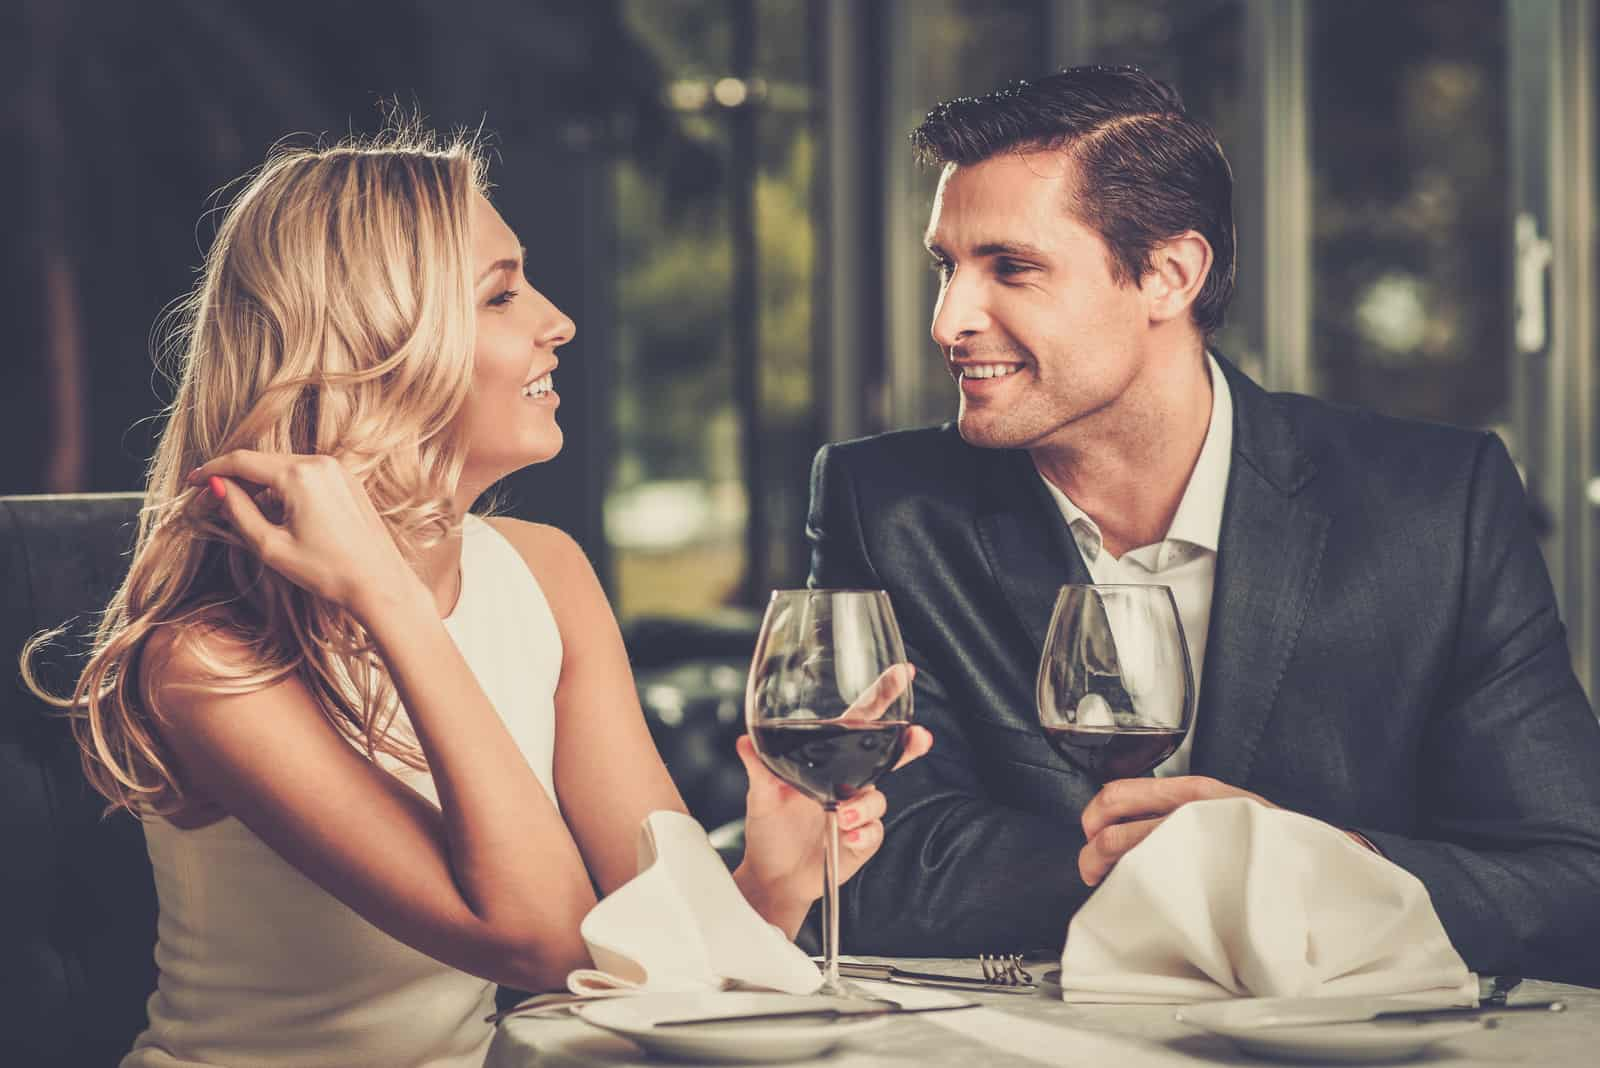 a man and a woman sitting at a table with wine talking